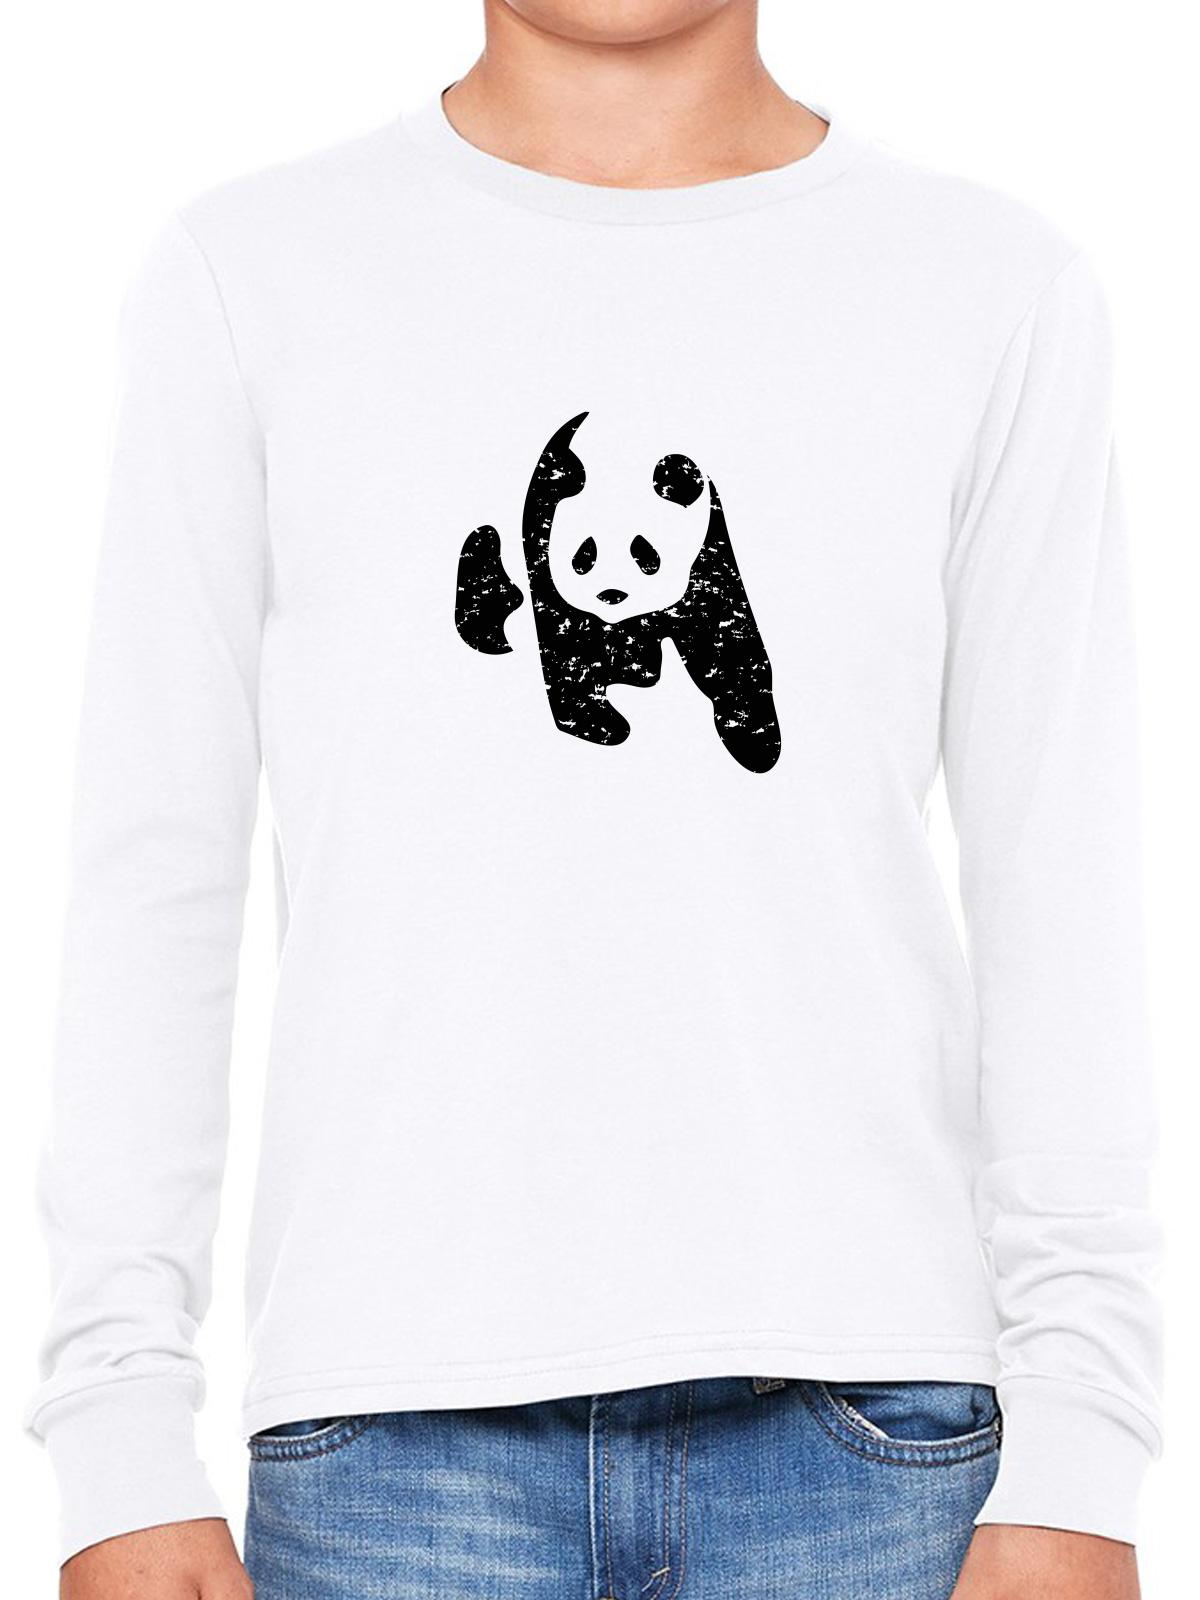 Iconic Panda Bear Black White Graphic Girl's Long Sleeve T-Shirt